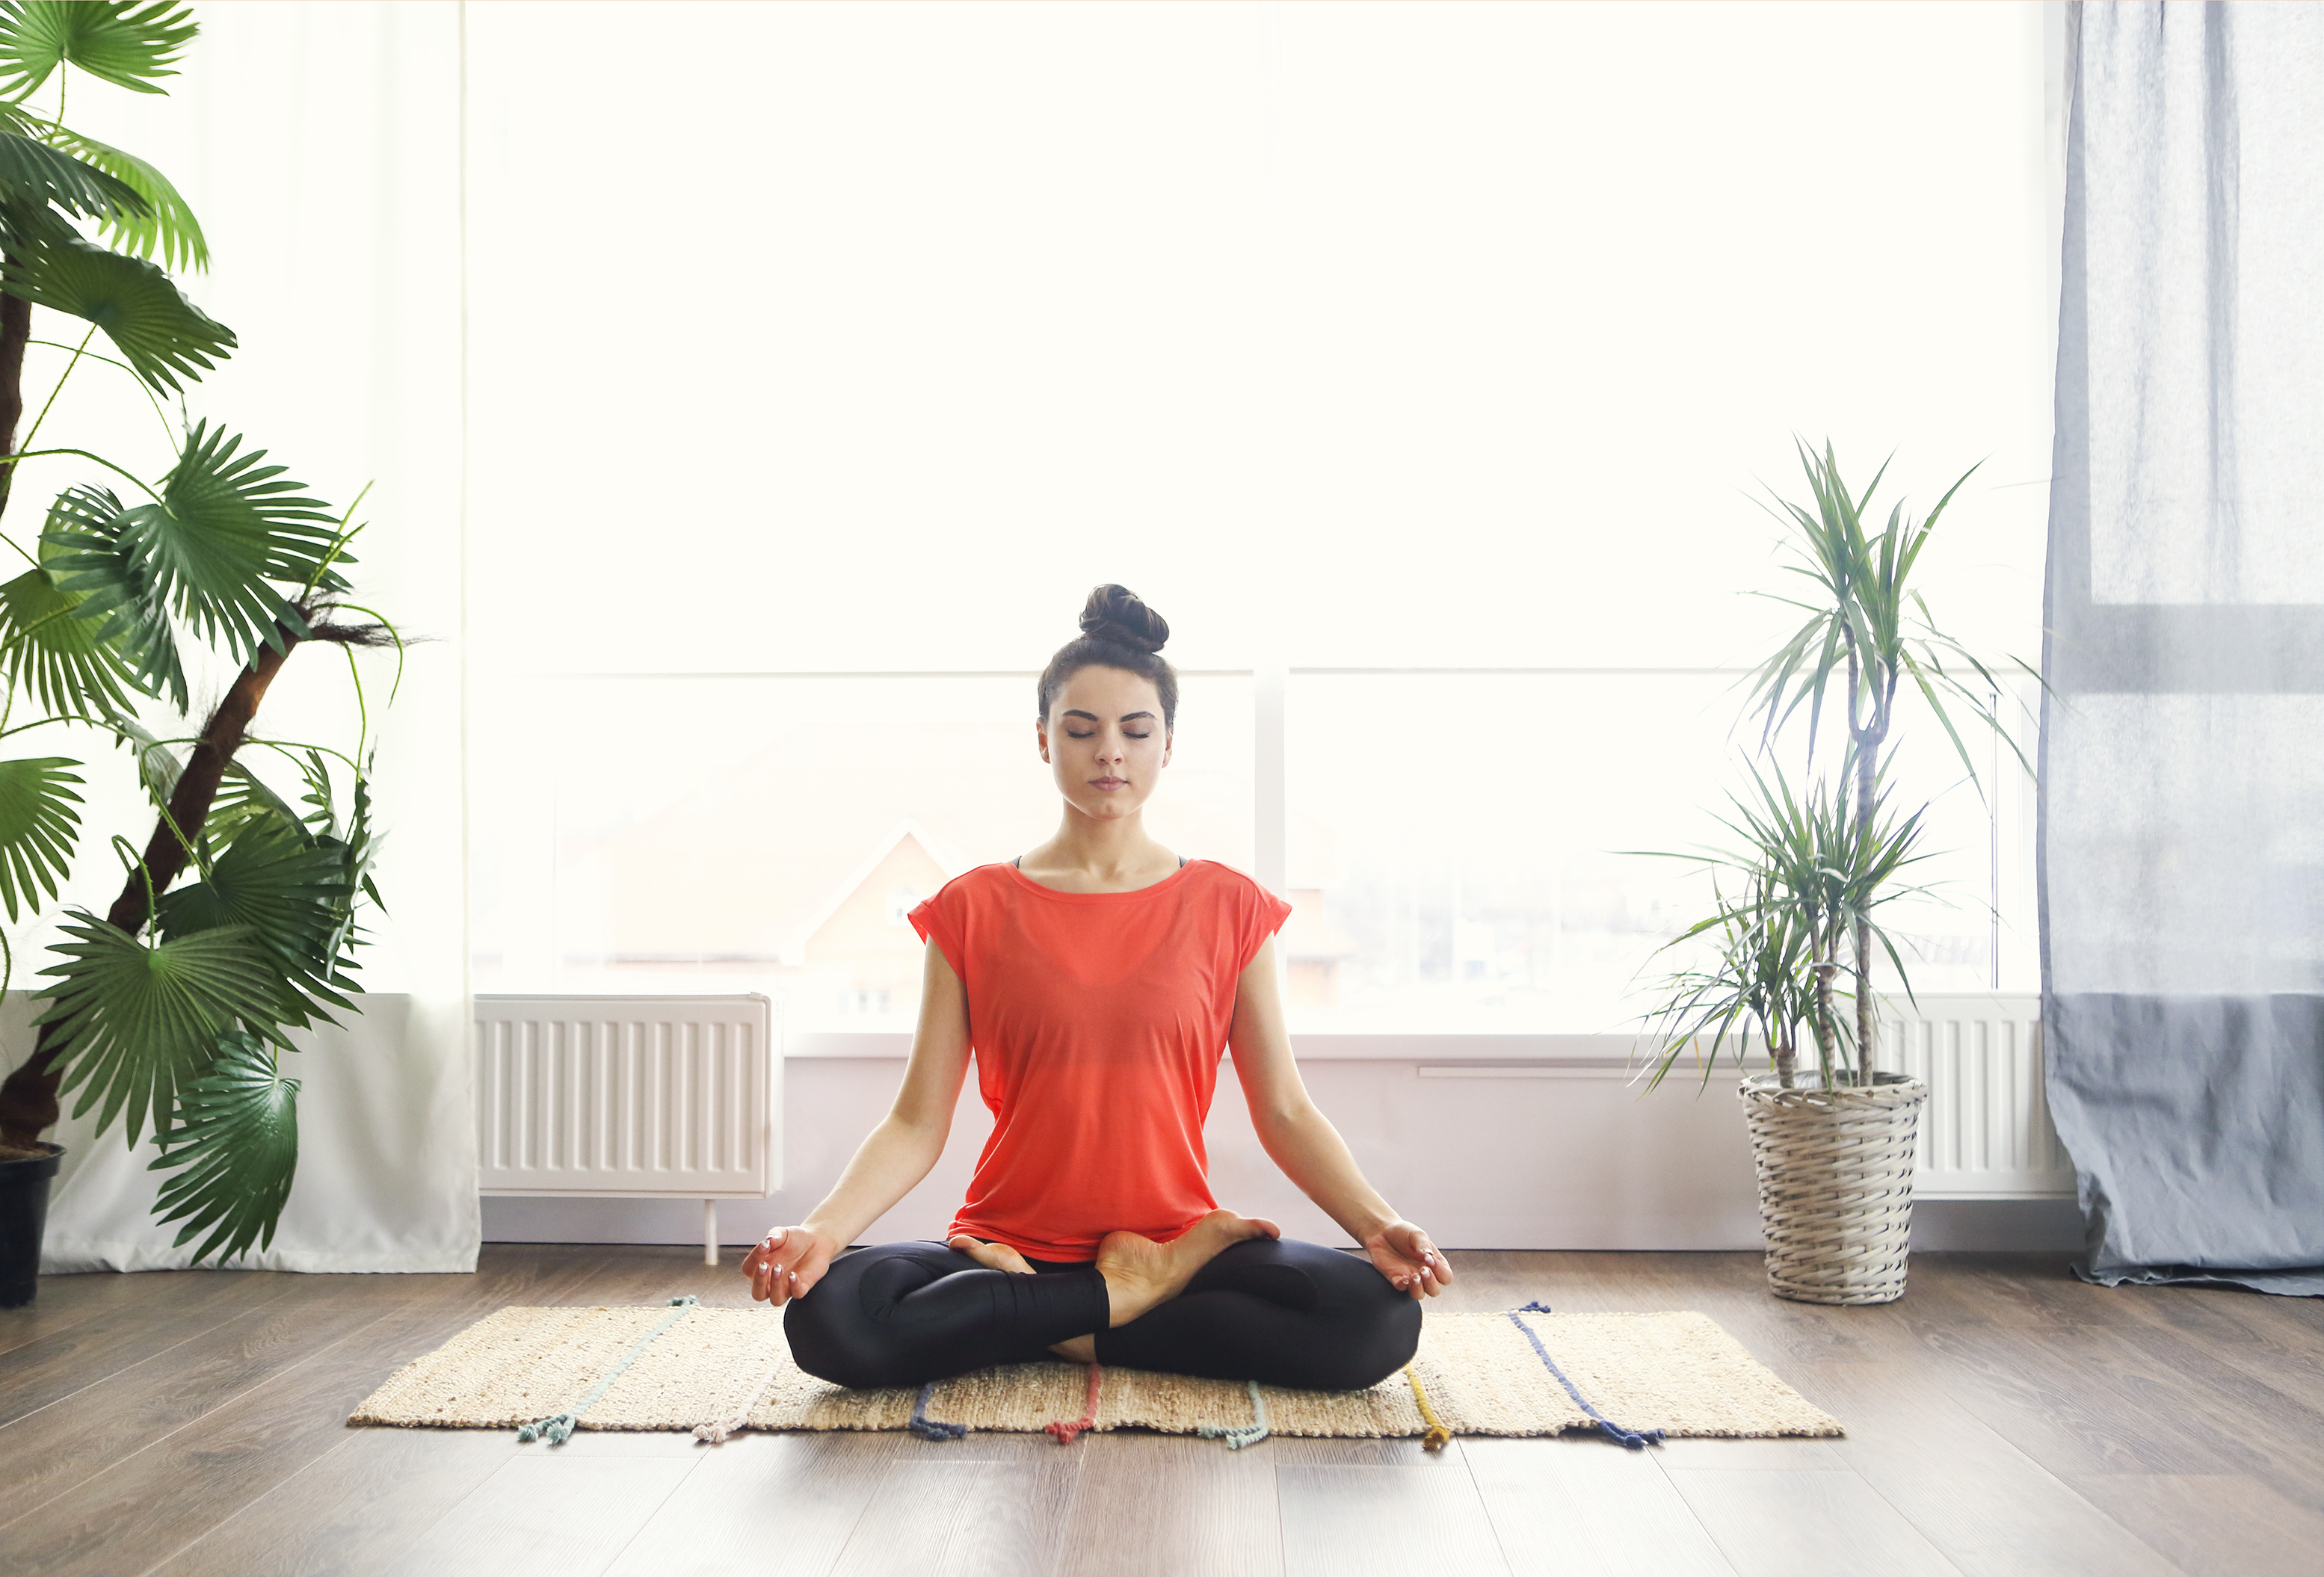 Woman meditating at home with large plants